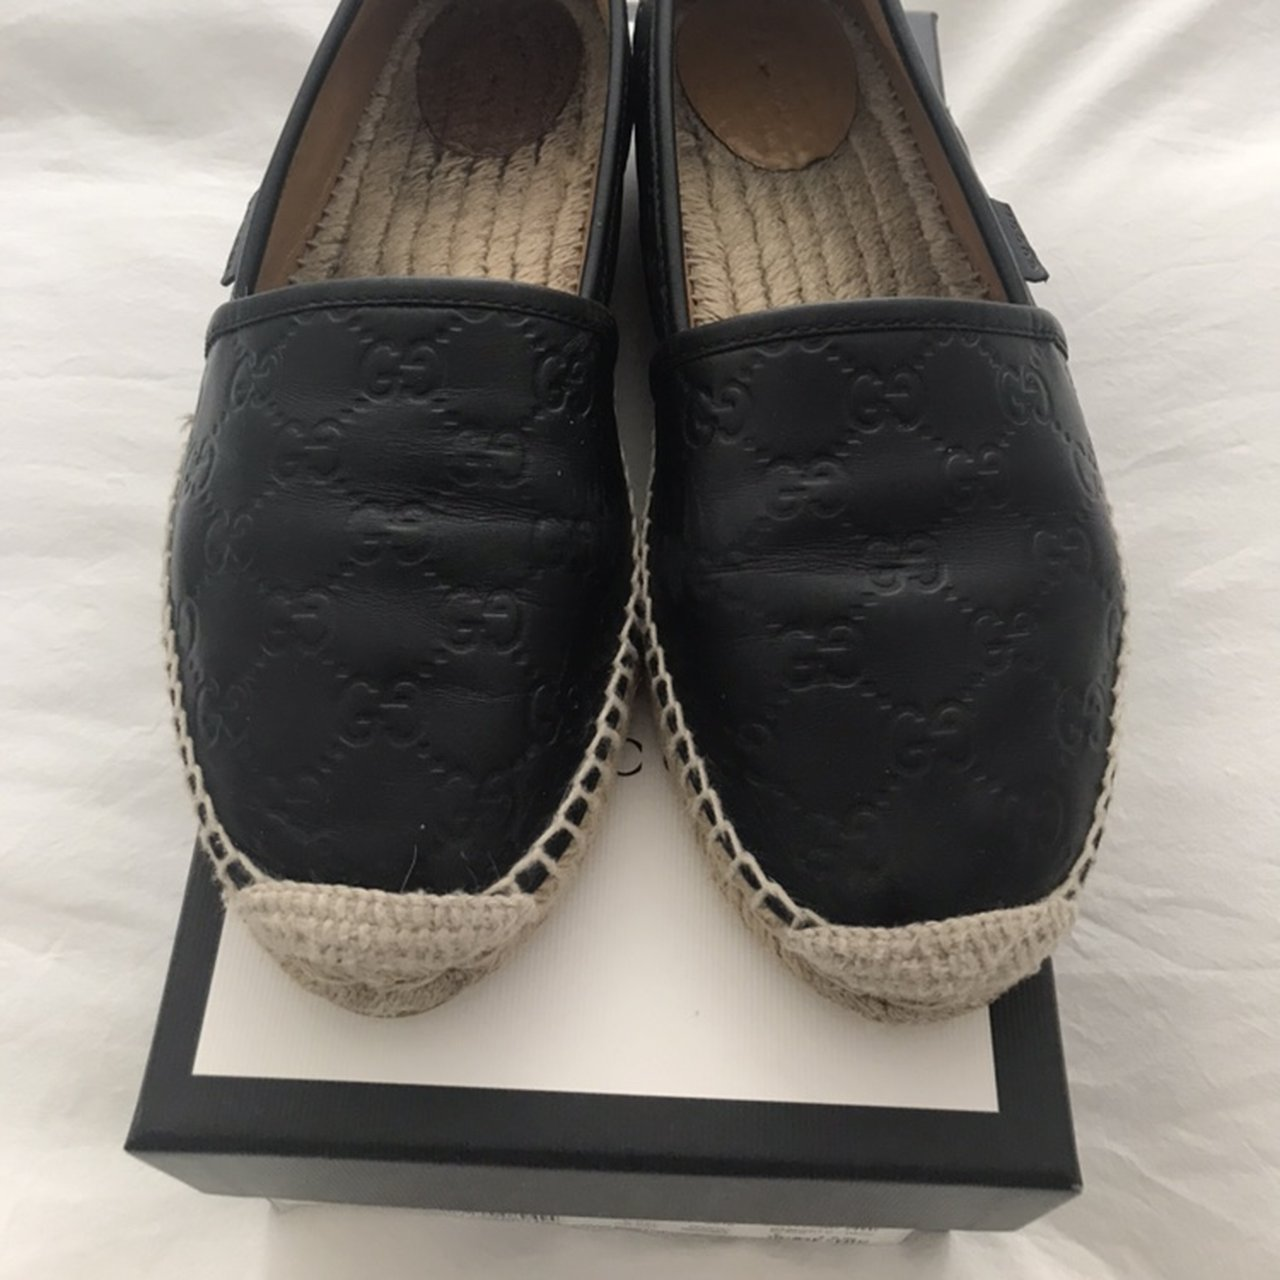 234341a9696 Gucci espadrilles black come with box and dustbag excellent - Depop